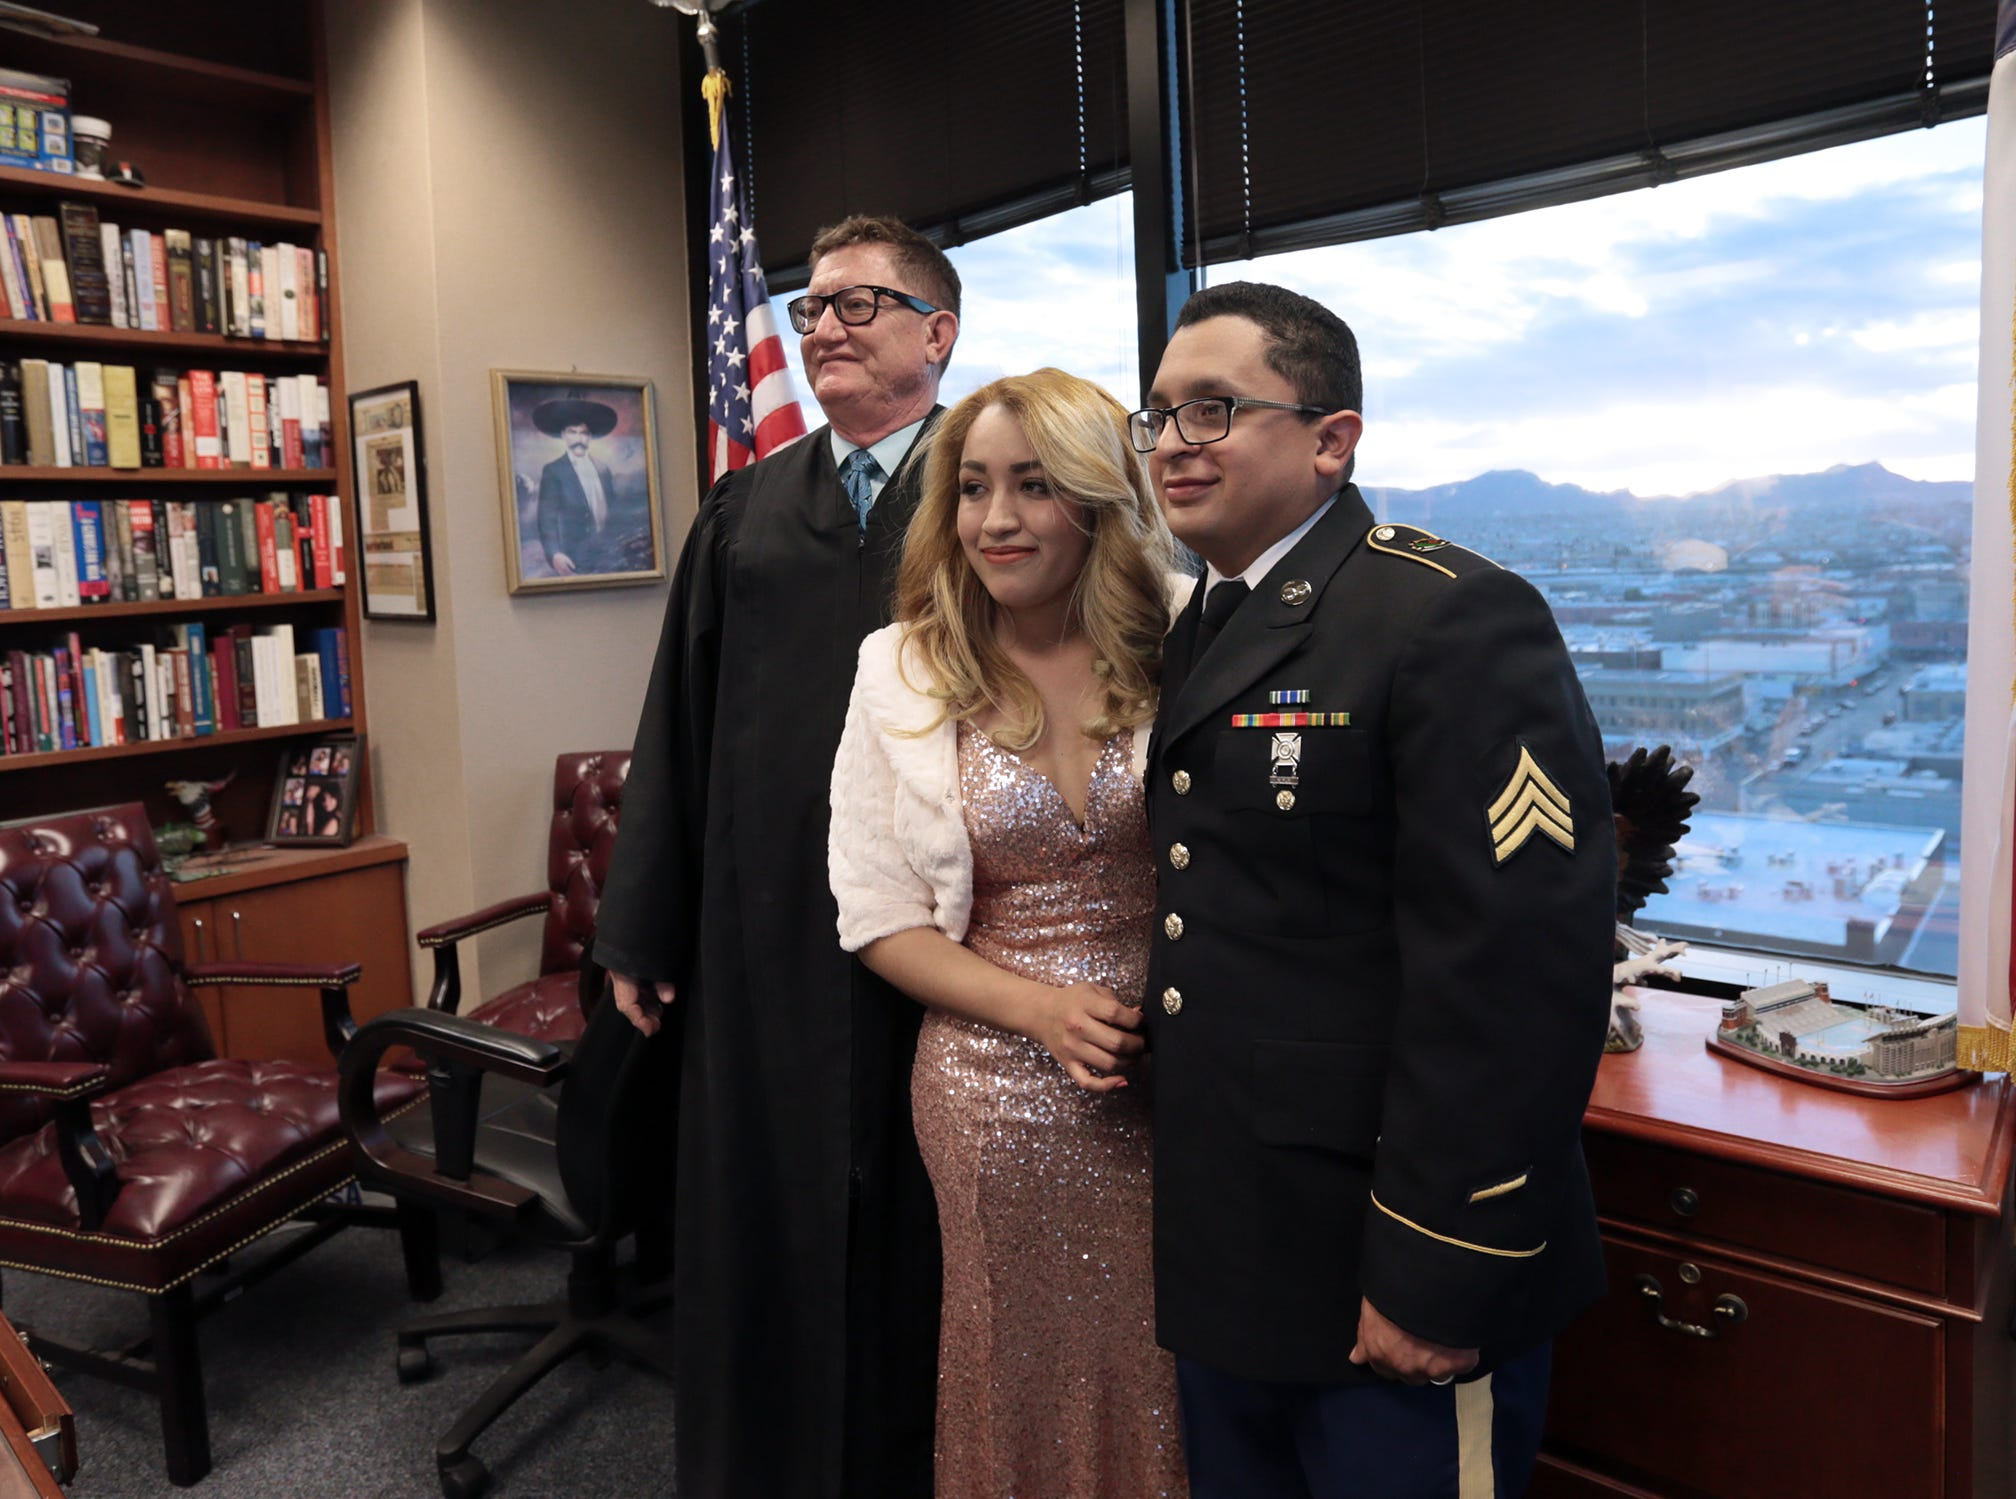 Judge Patrick Garcia had the opportunity to marry Randy Juarez and Carla Perez as a jury deliberated in a murder trial Tuesday in the 384th District Court in El Paso. Juarez is a mechanic with the New Mexico National Guard's 919th military police. Their families were present to witness the ceremony, which took place in the judge's chambers.